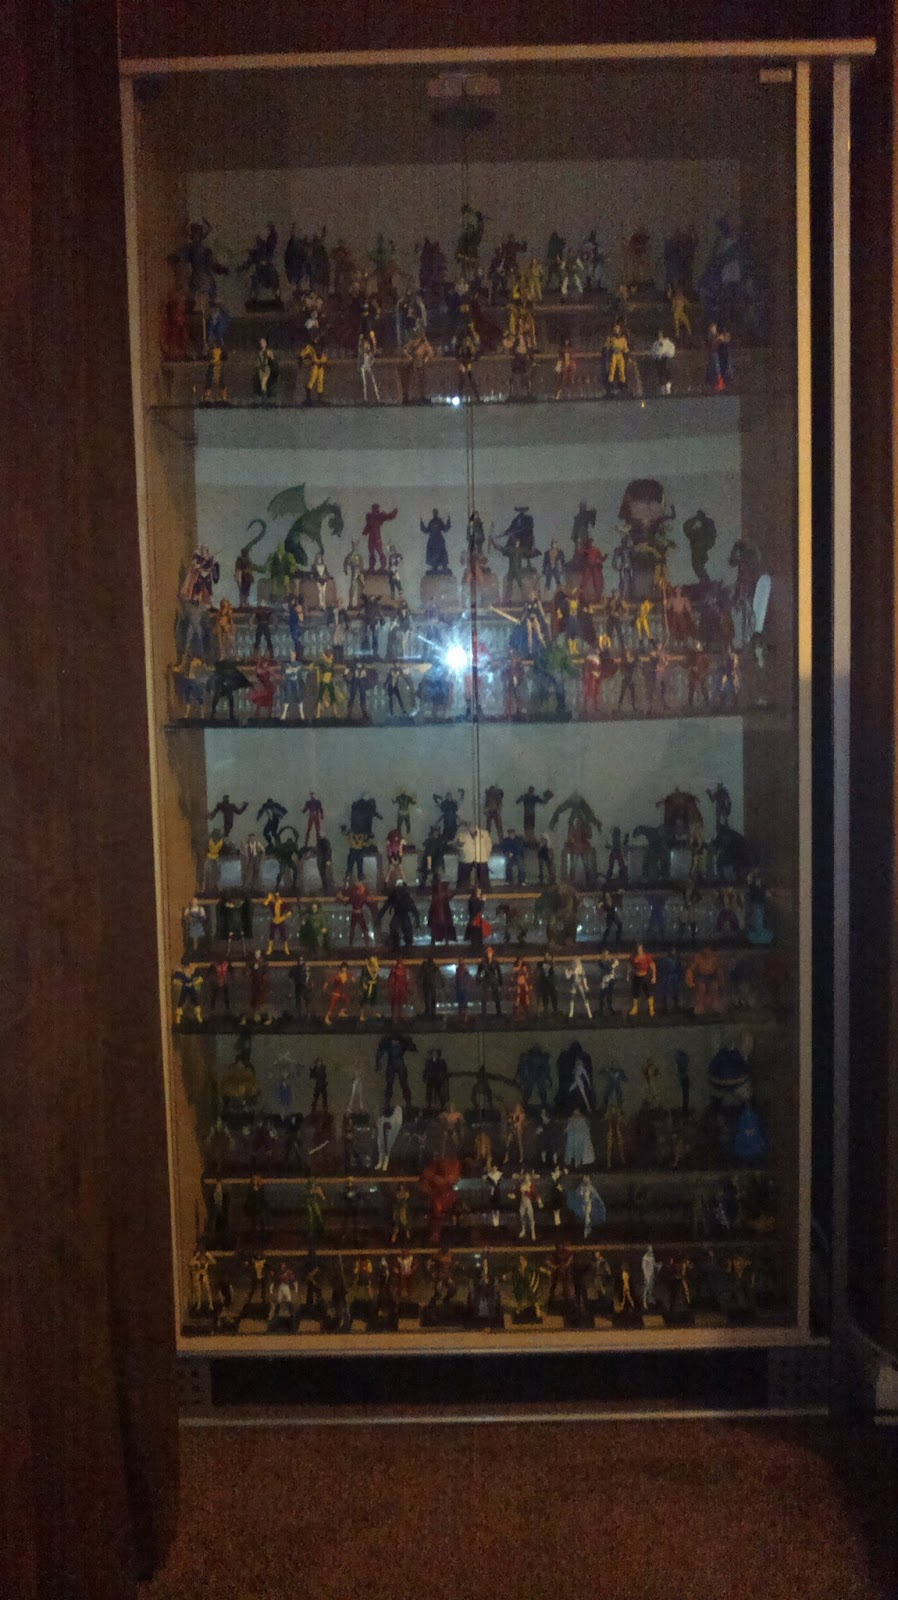 dave's blog: THE CLASSIC MARVEL FIGURINE COLLECTION - MY DISPLAY ...